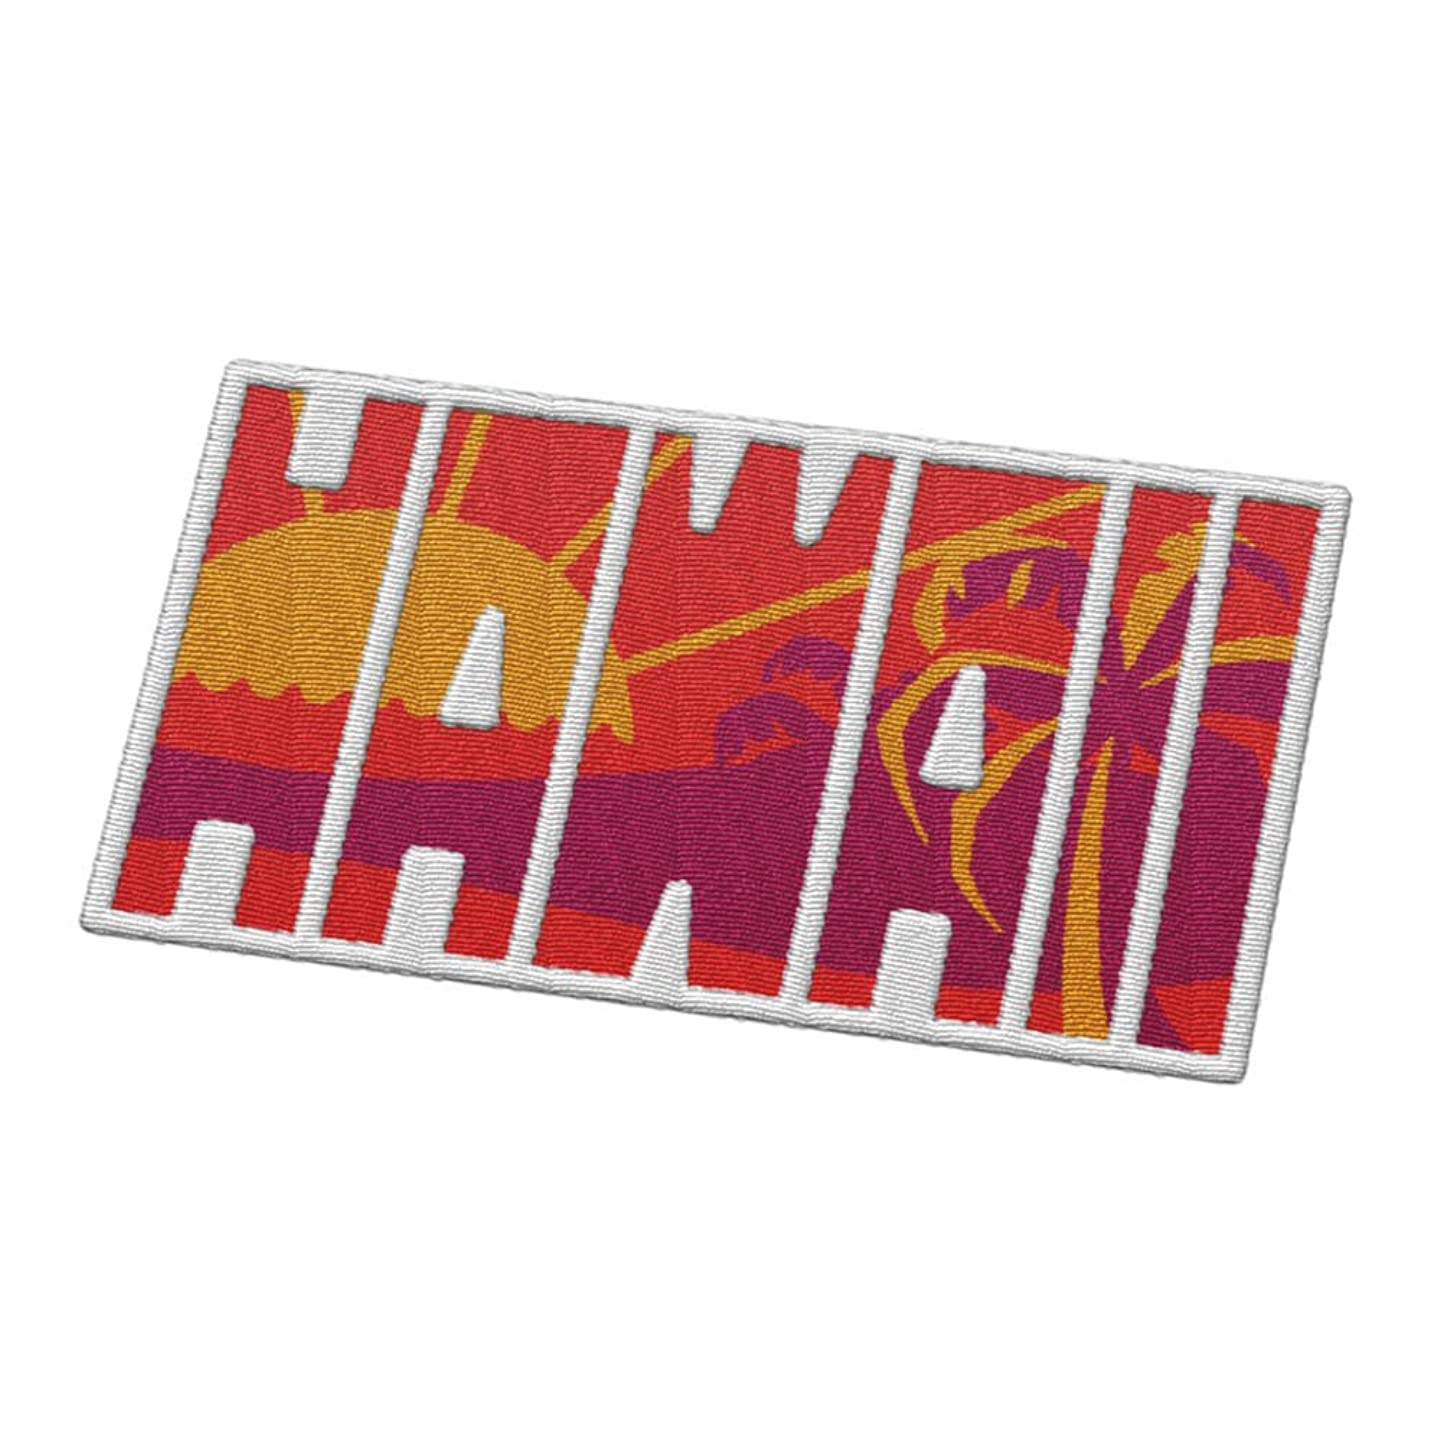 Hawaii Travel Patch - Sunset on the Beach / Honolulu or Maui / Great souvenir for backpacks and luggage / Backpacking and travelling badge.